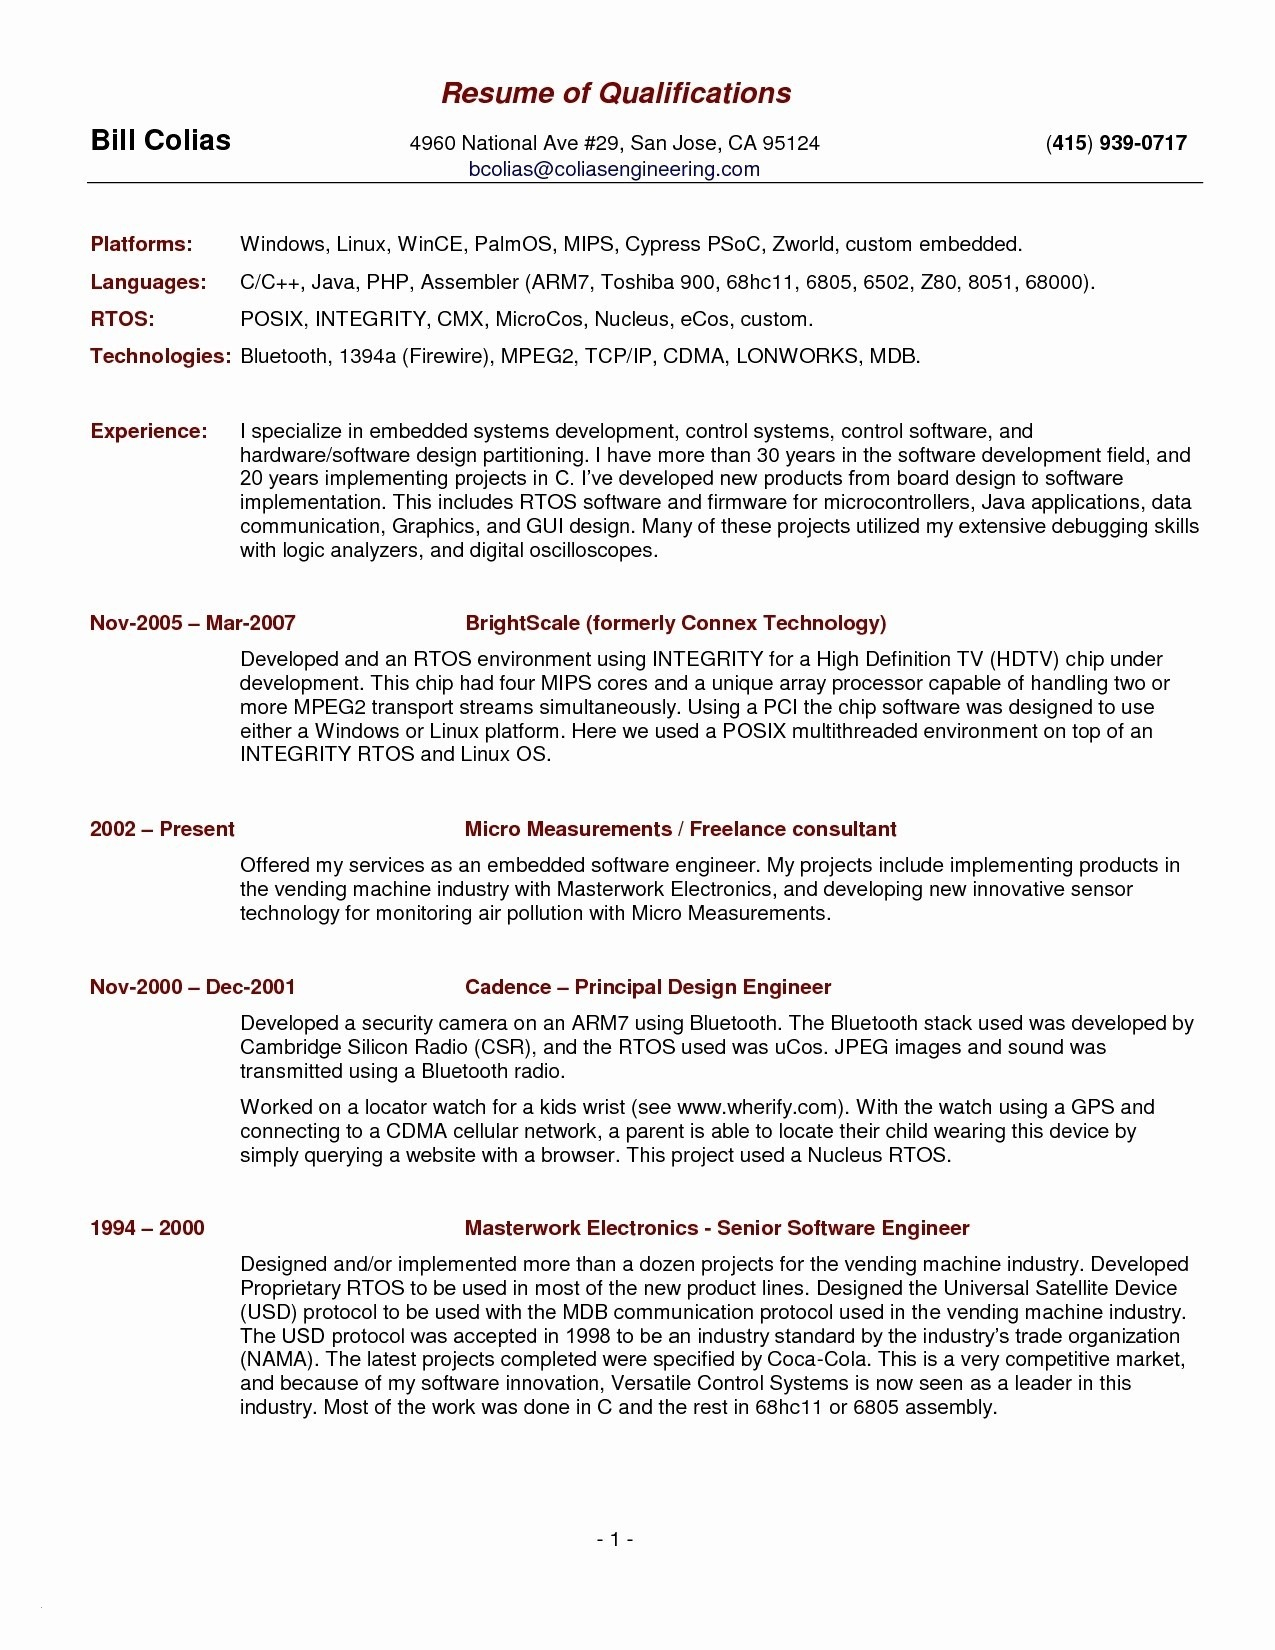 freelance resume template example-Resume Templates Pdf Free Inspirational Lovely Pr Resume Template Elegant Dictionary Template 0d Archives 1-r